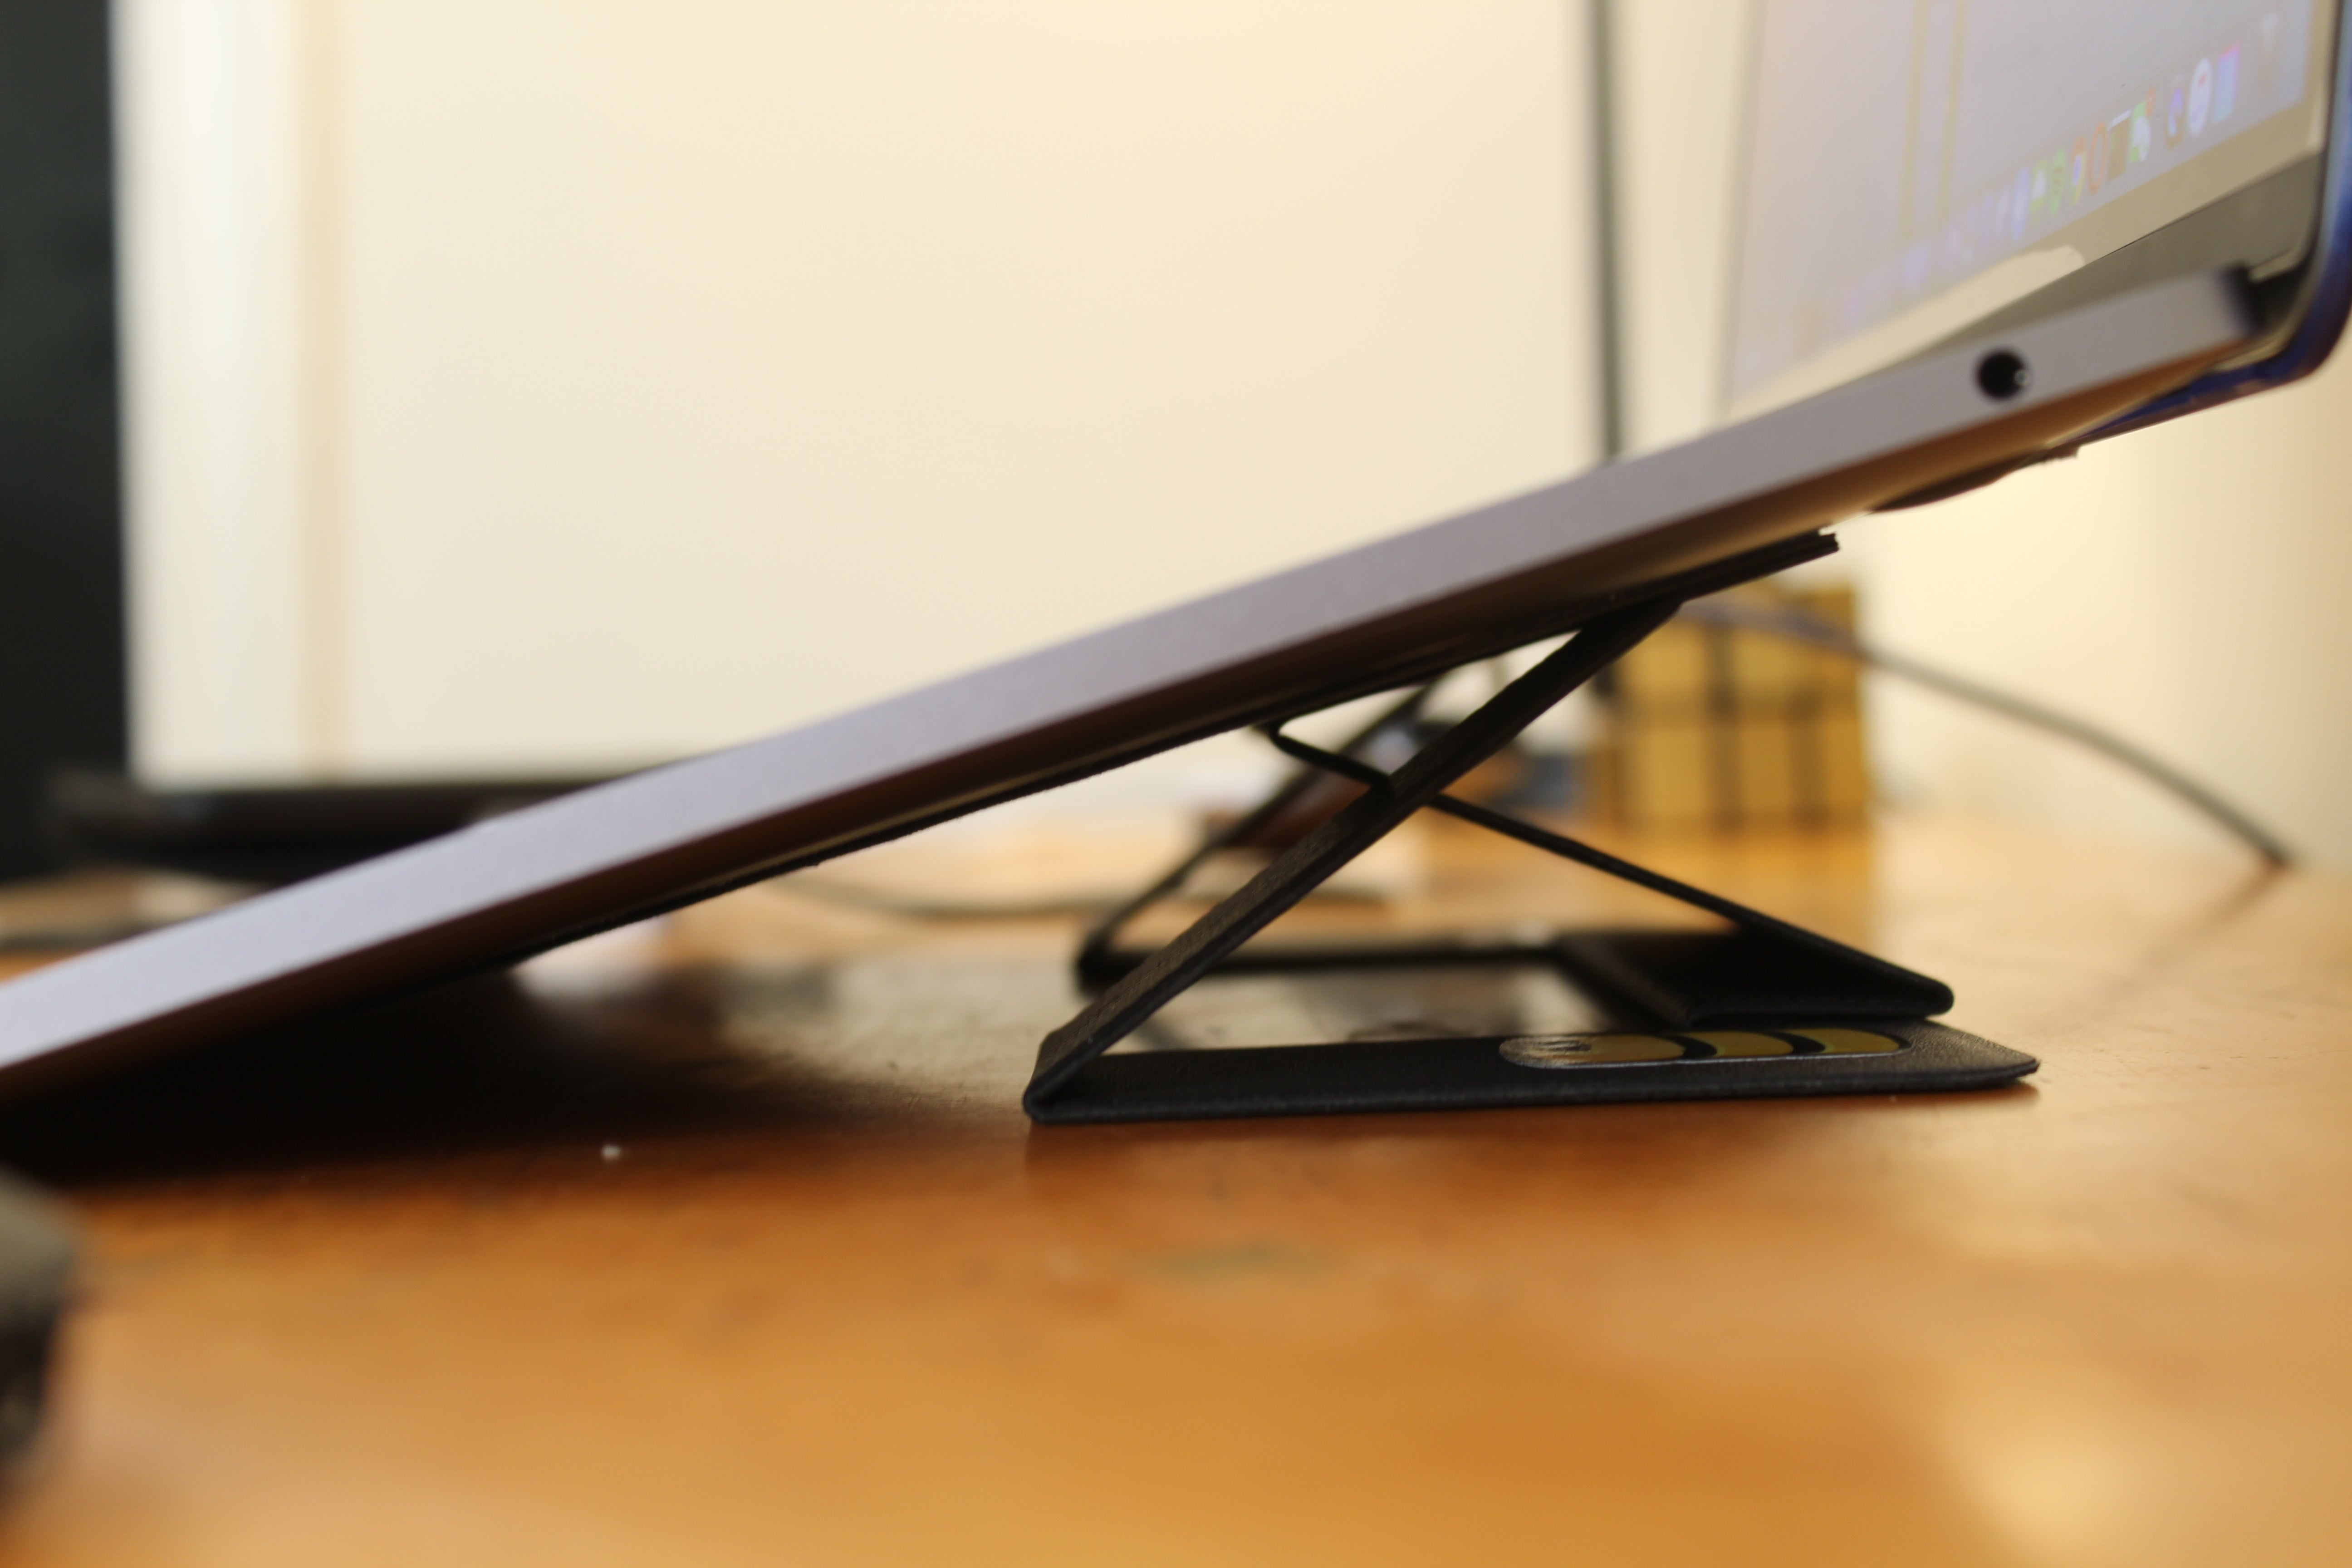 Liftd Laptop Stand